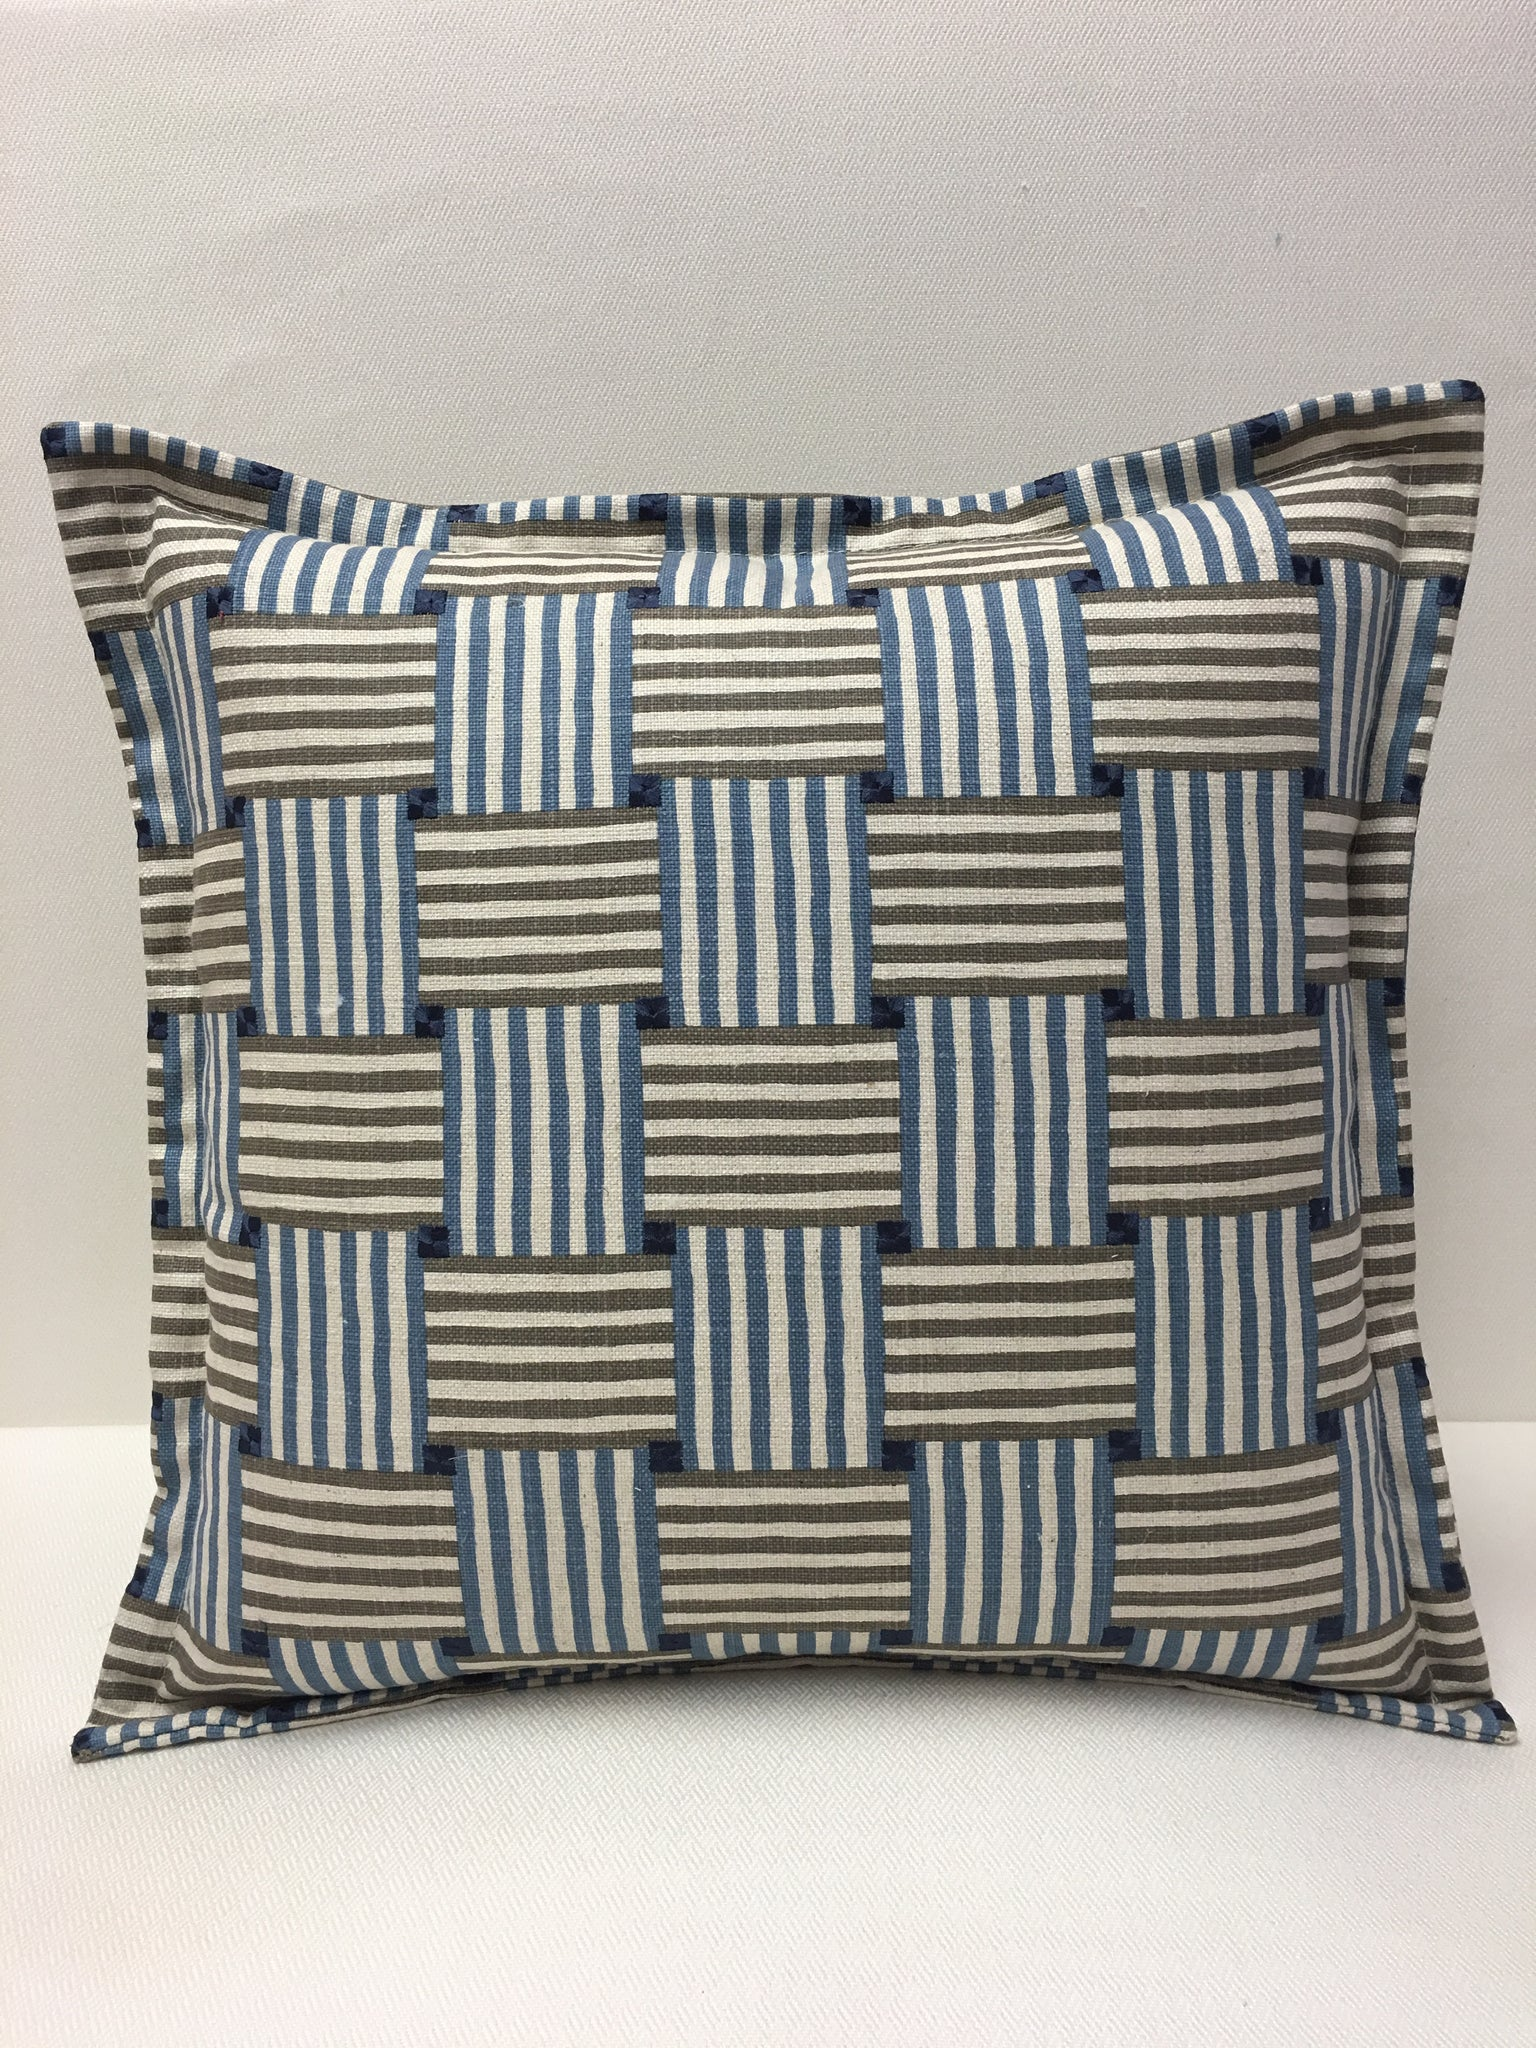 Kravet Blue Beige Navy Square/Stripe Design Pillow Cover, Eurosham or Lumbar Pillow Accent Pillow, Throw Pillow